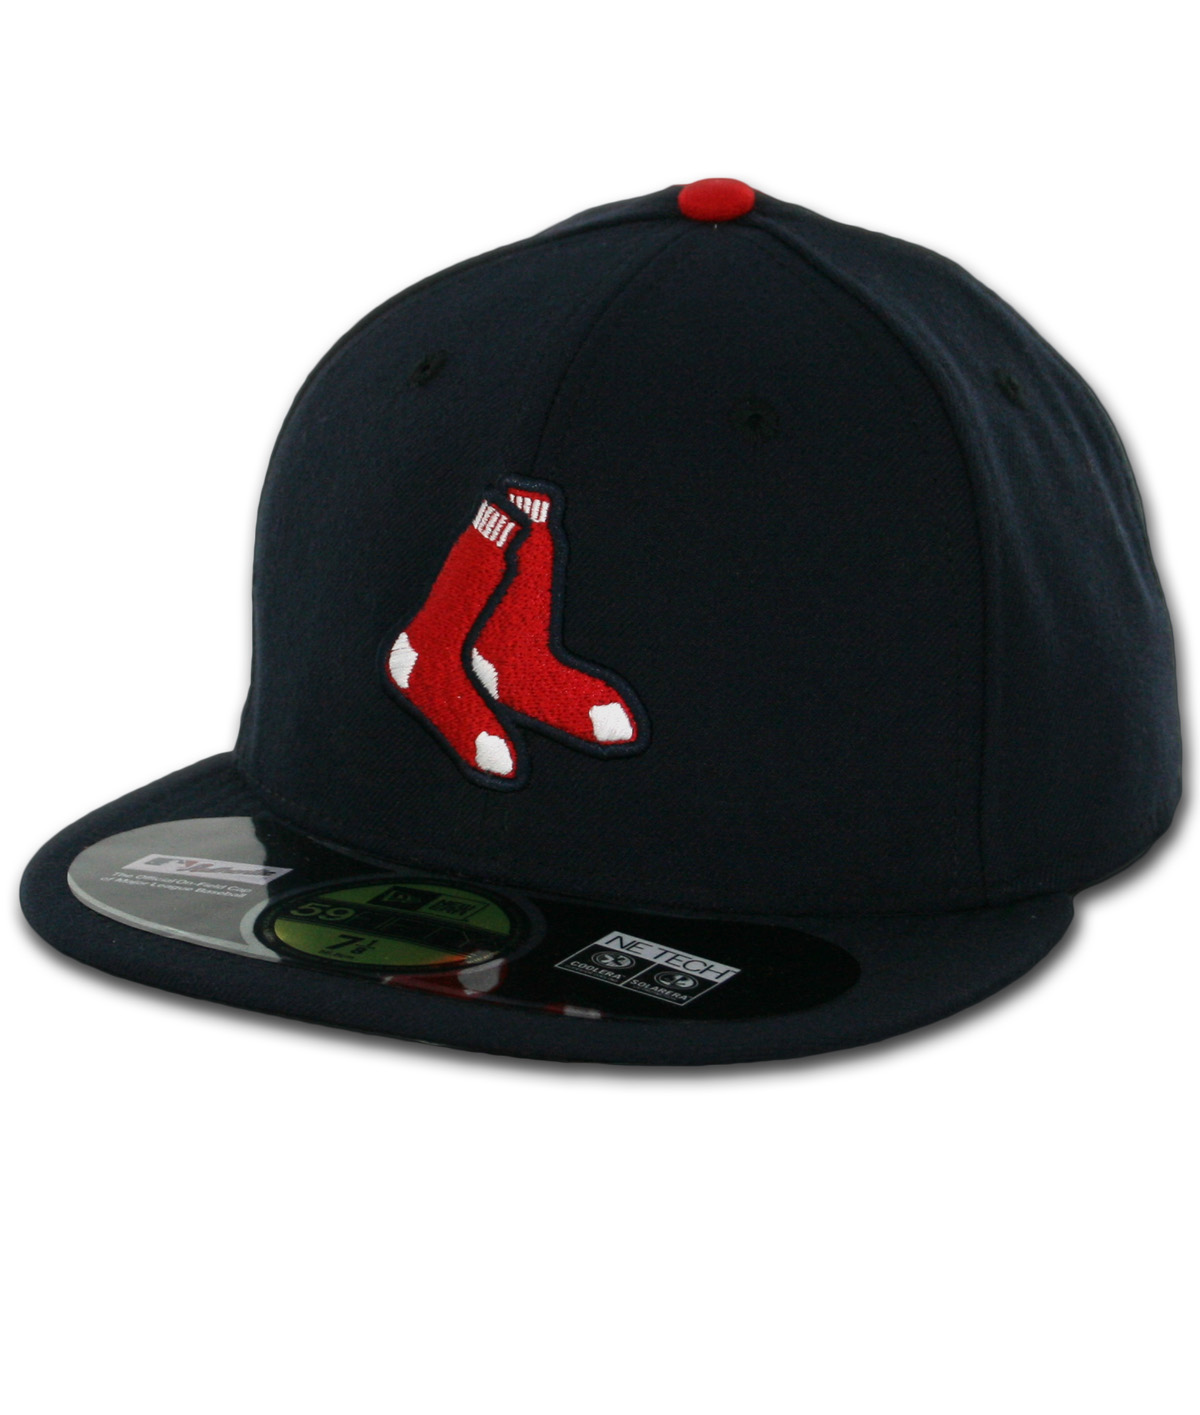 New Era 59Fifty Boston Red Sox 2016 Alternate Authentic On Field Fitted Hat  - Billion Creation Streetwear 851672c3a3f